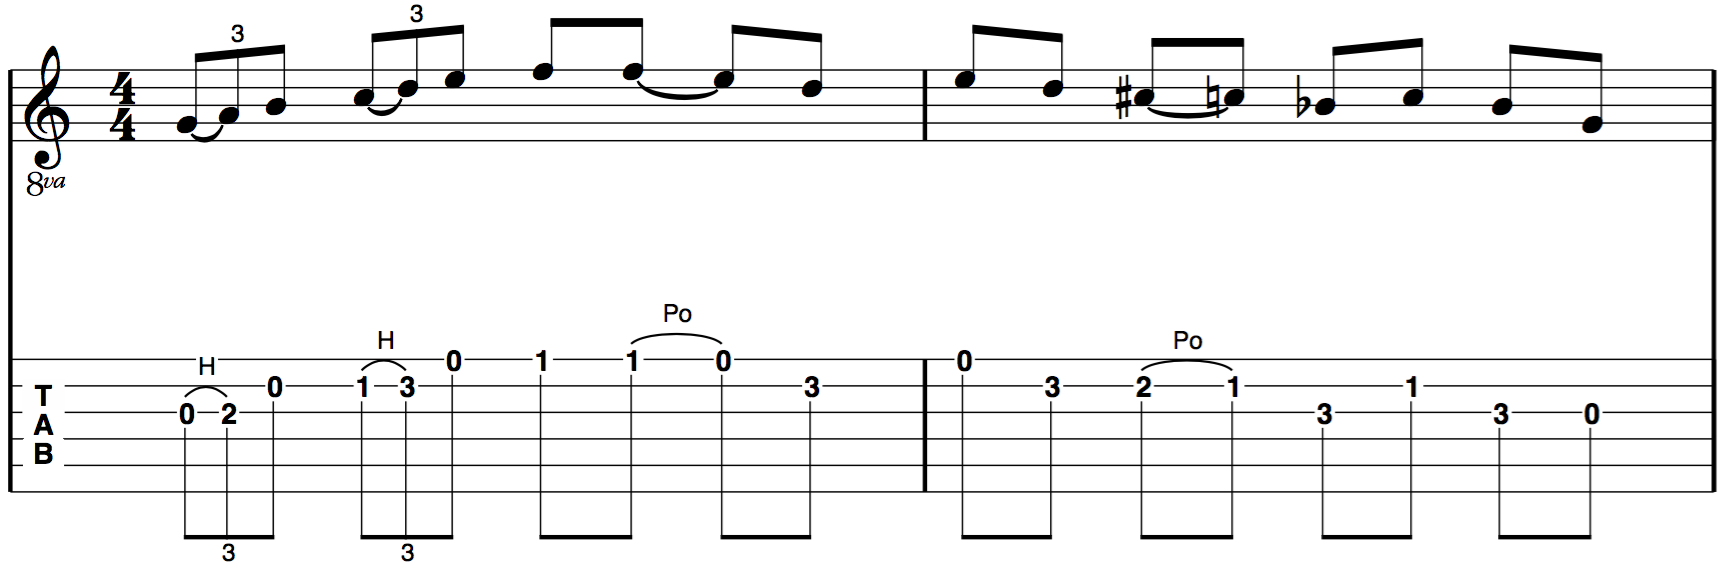 country bluegrass guitar lick with eighth note triplets